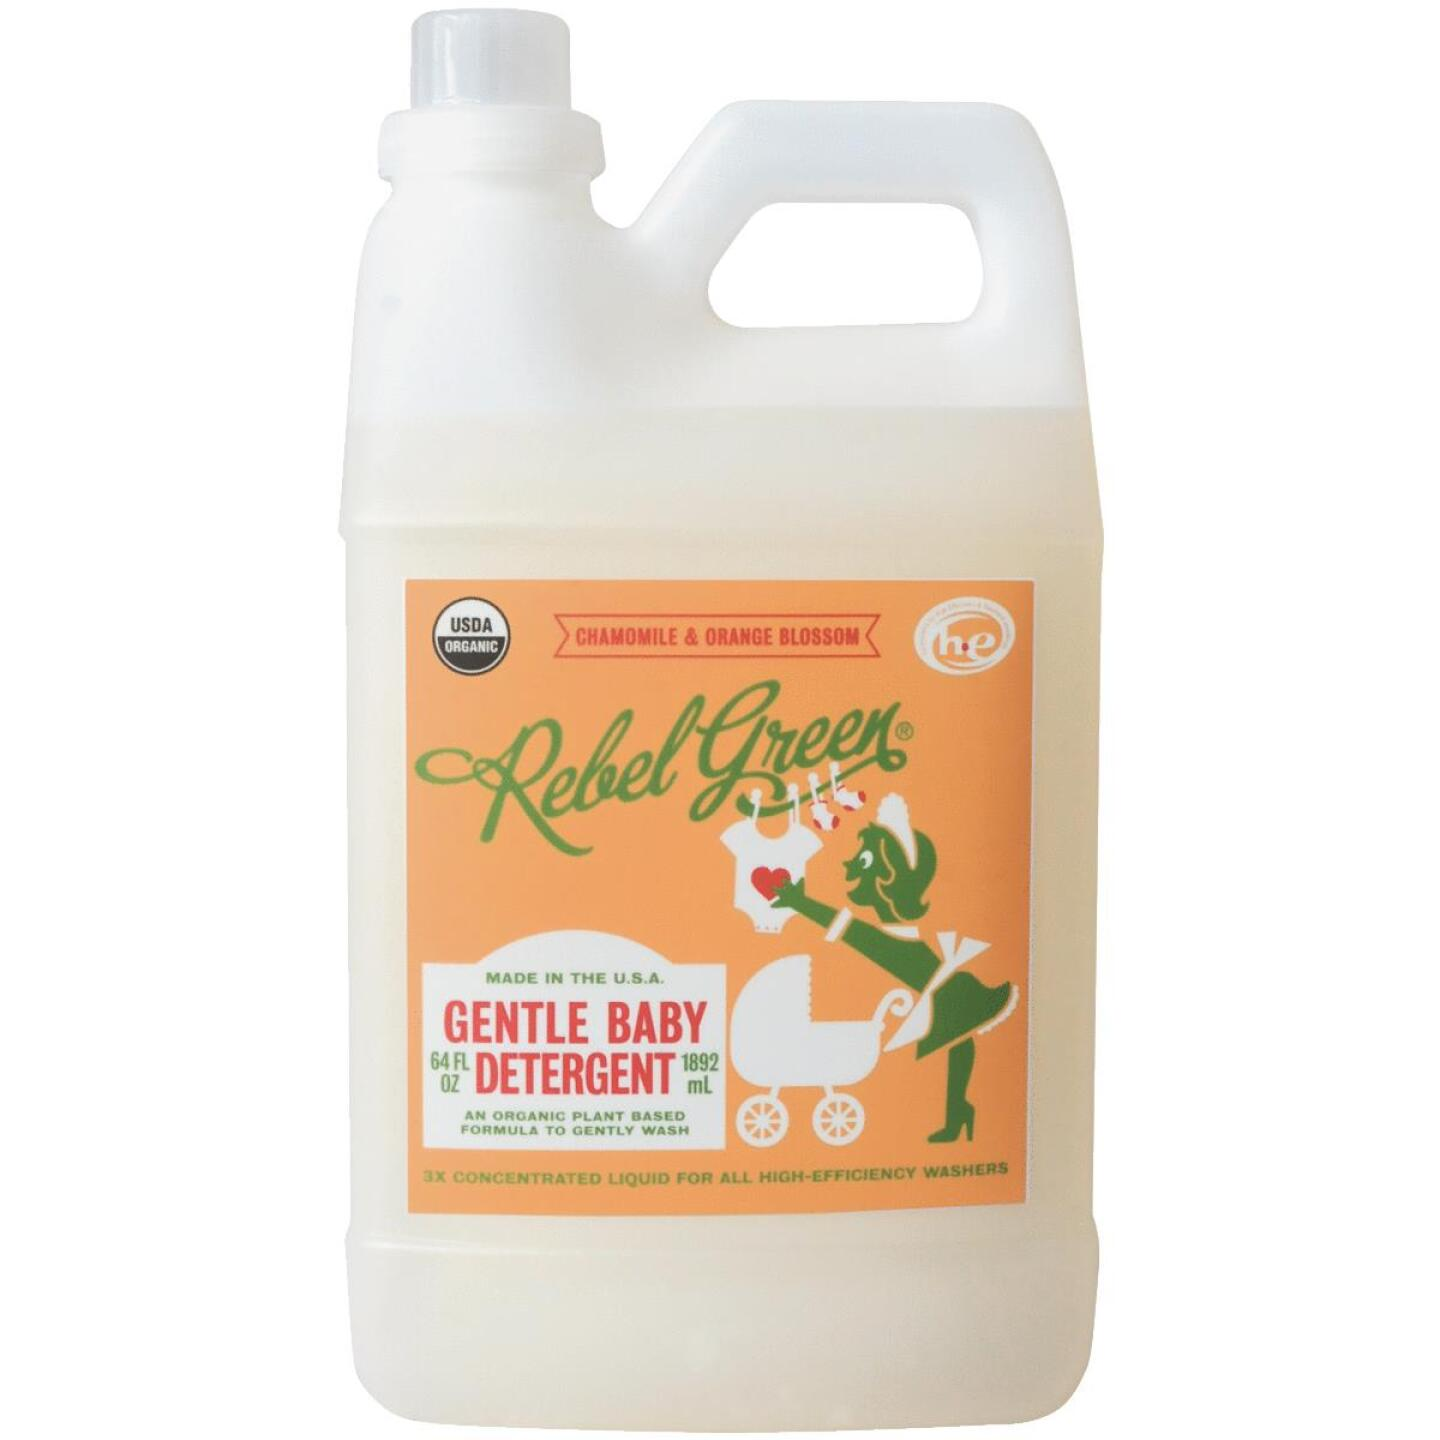 Rebel Green 64 Oz. Chamomile & Orange Blossom Baby Detergent Image 1